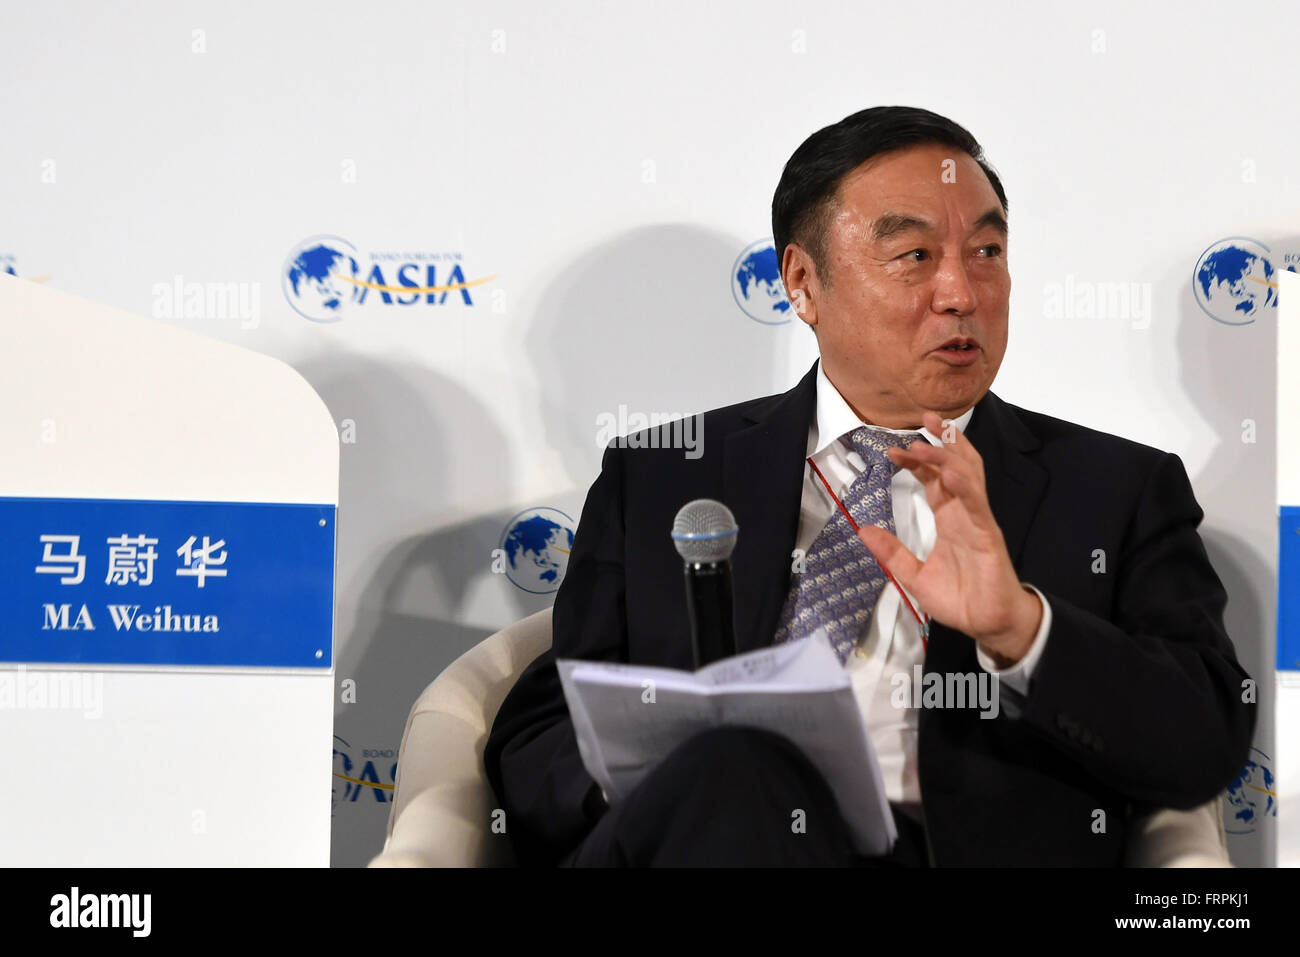 Boao, China's Hainan Province. 23rd Mar, 2016. Ma Weihua, former president of China Merchants Bank, speaks at - Stock Image